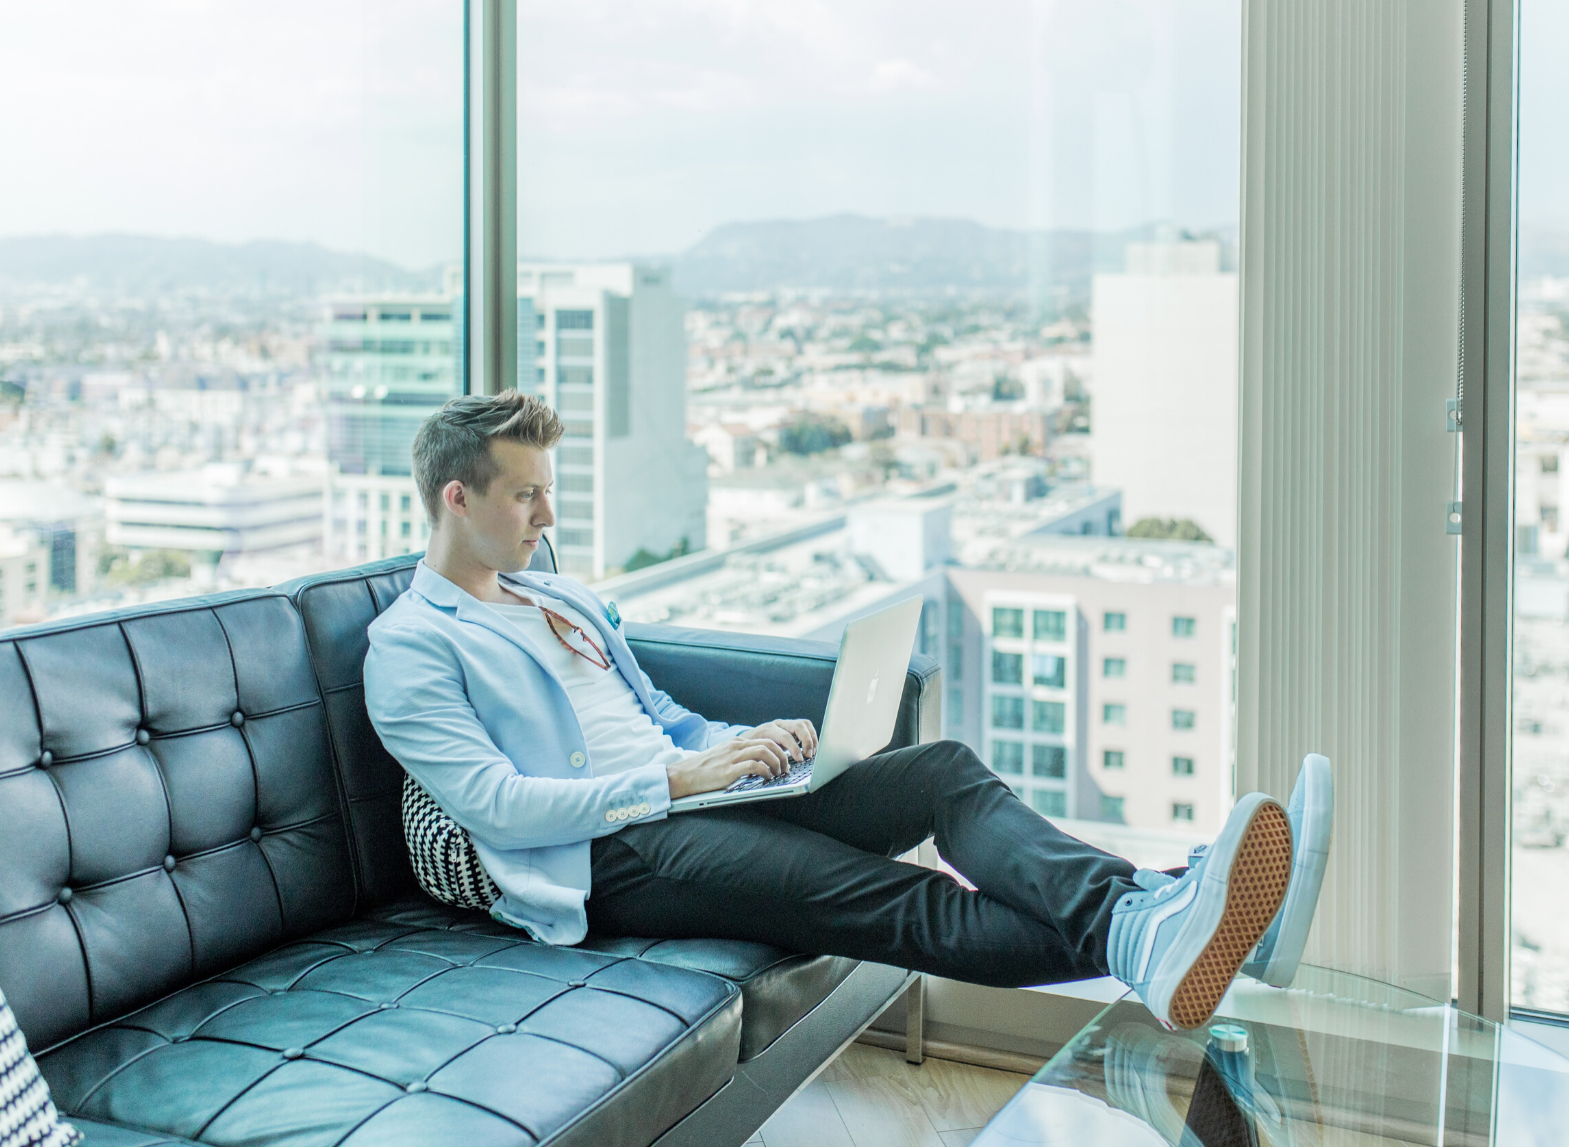 work from couch_A Hubspot Agencys Top 10 Tips for Remote Working